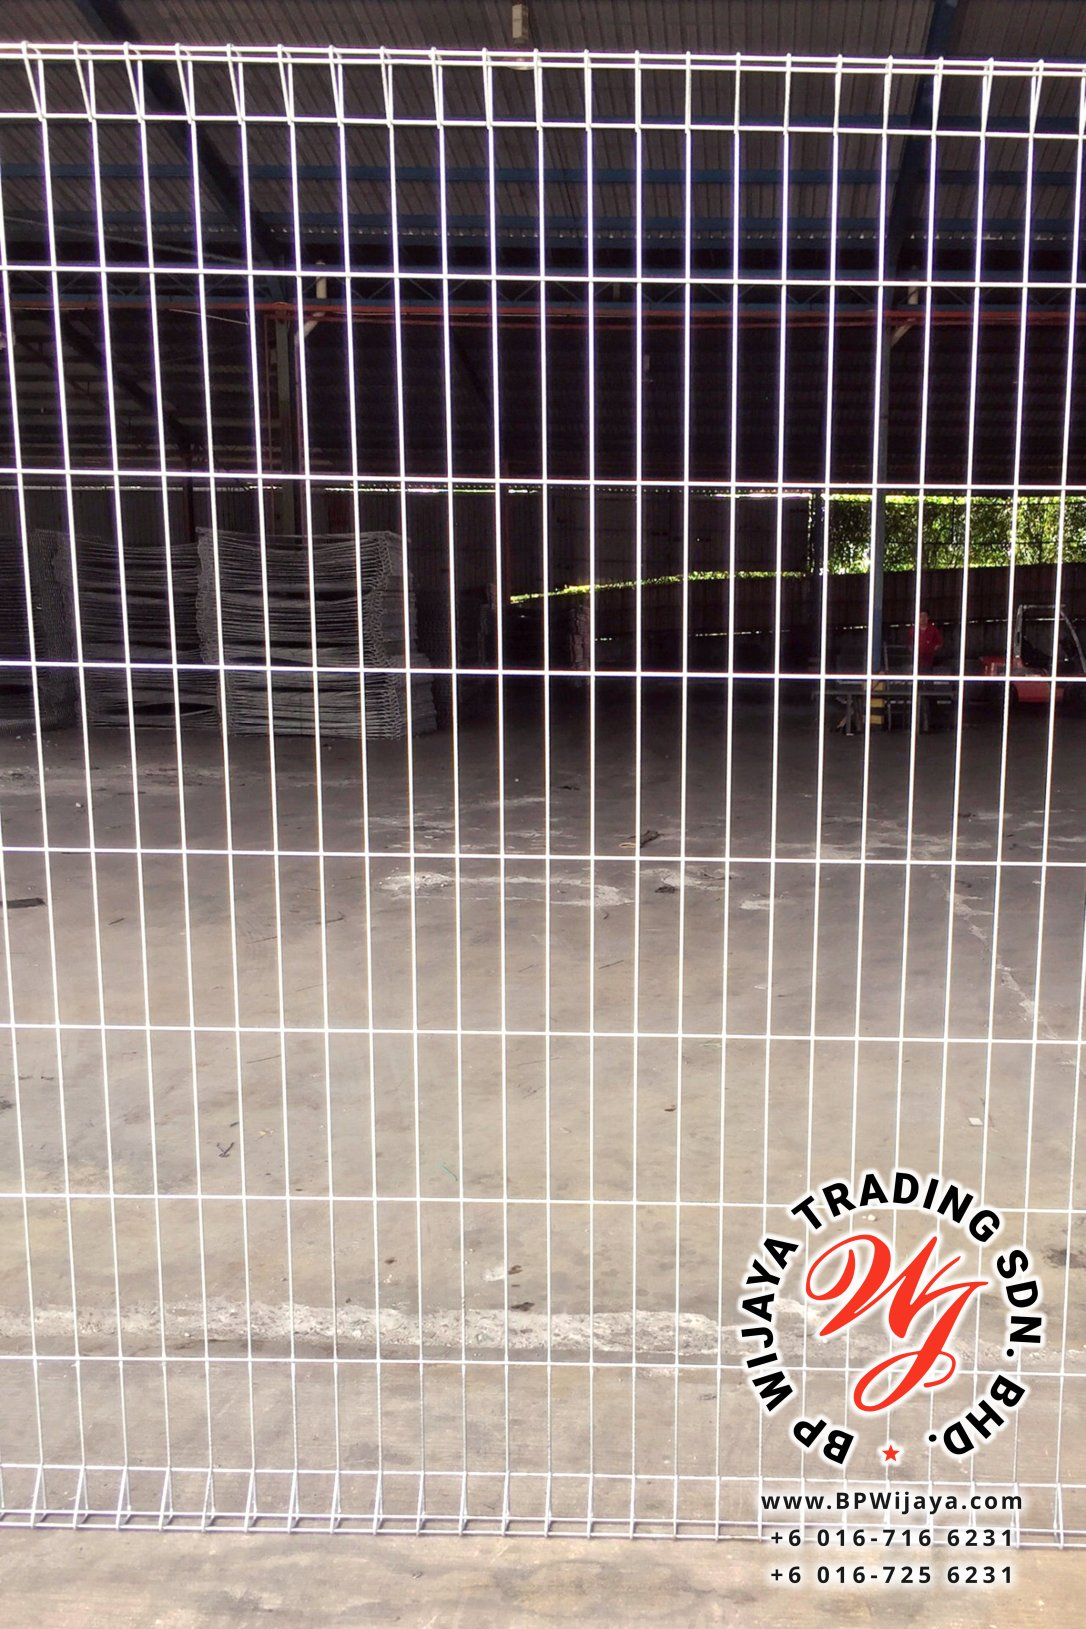 BP Wijaya Trading Sdn Bhd Malaysia Johor Batu Pahat manufacturer of safety fences building materials Hotdip Galvanized Fence Mesh Wire Fence FB BRC B08